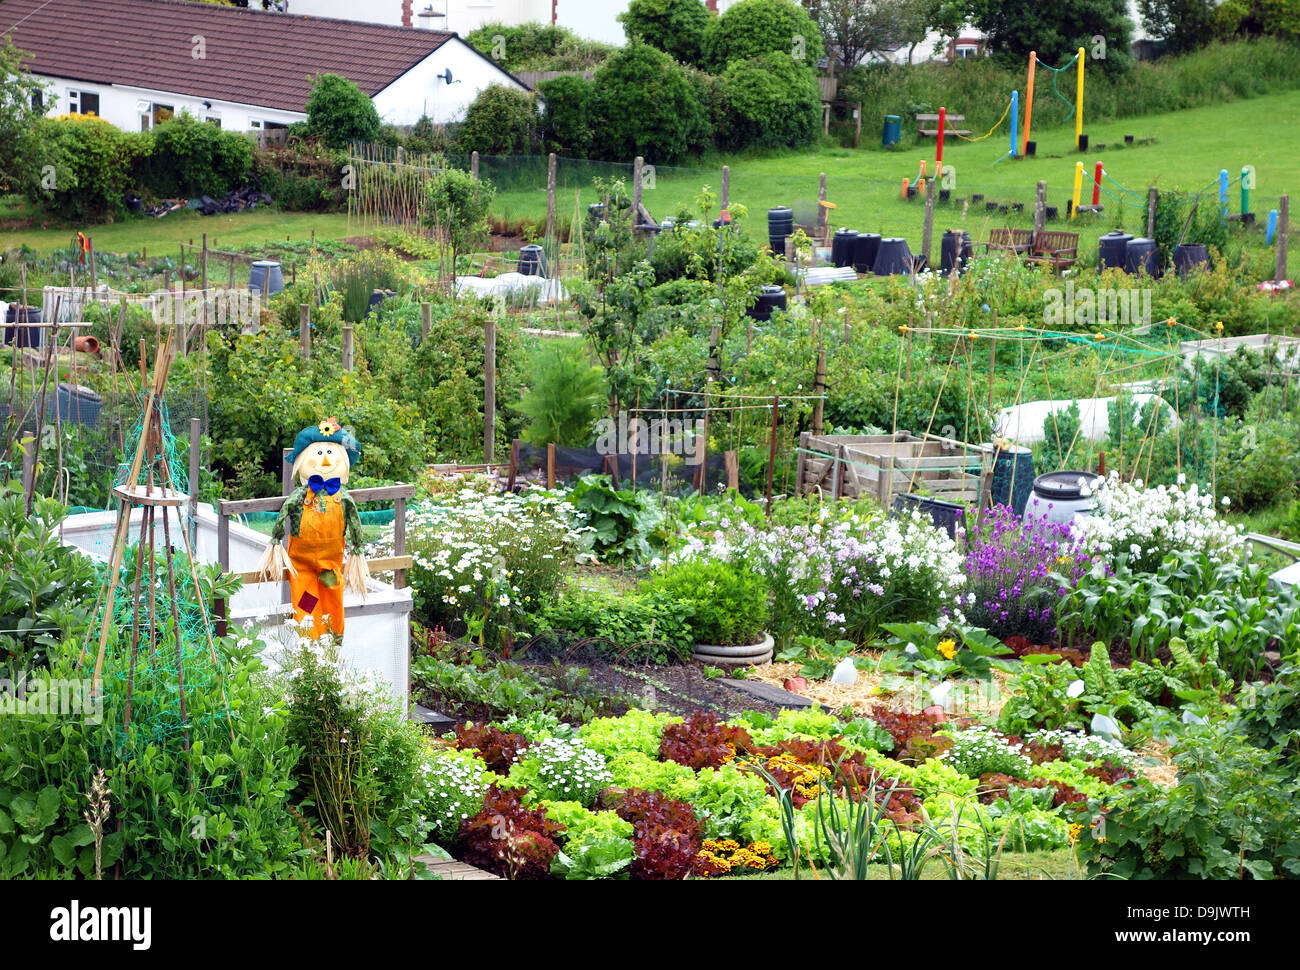 Allotments in an urban area - Stock Image